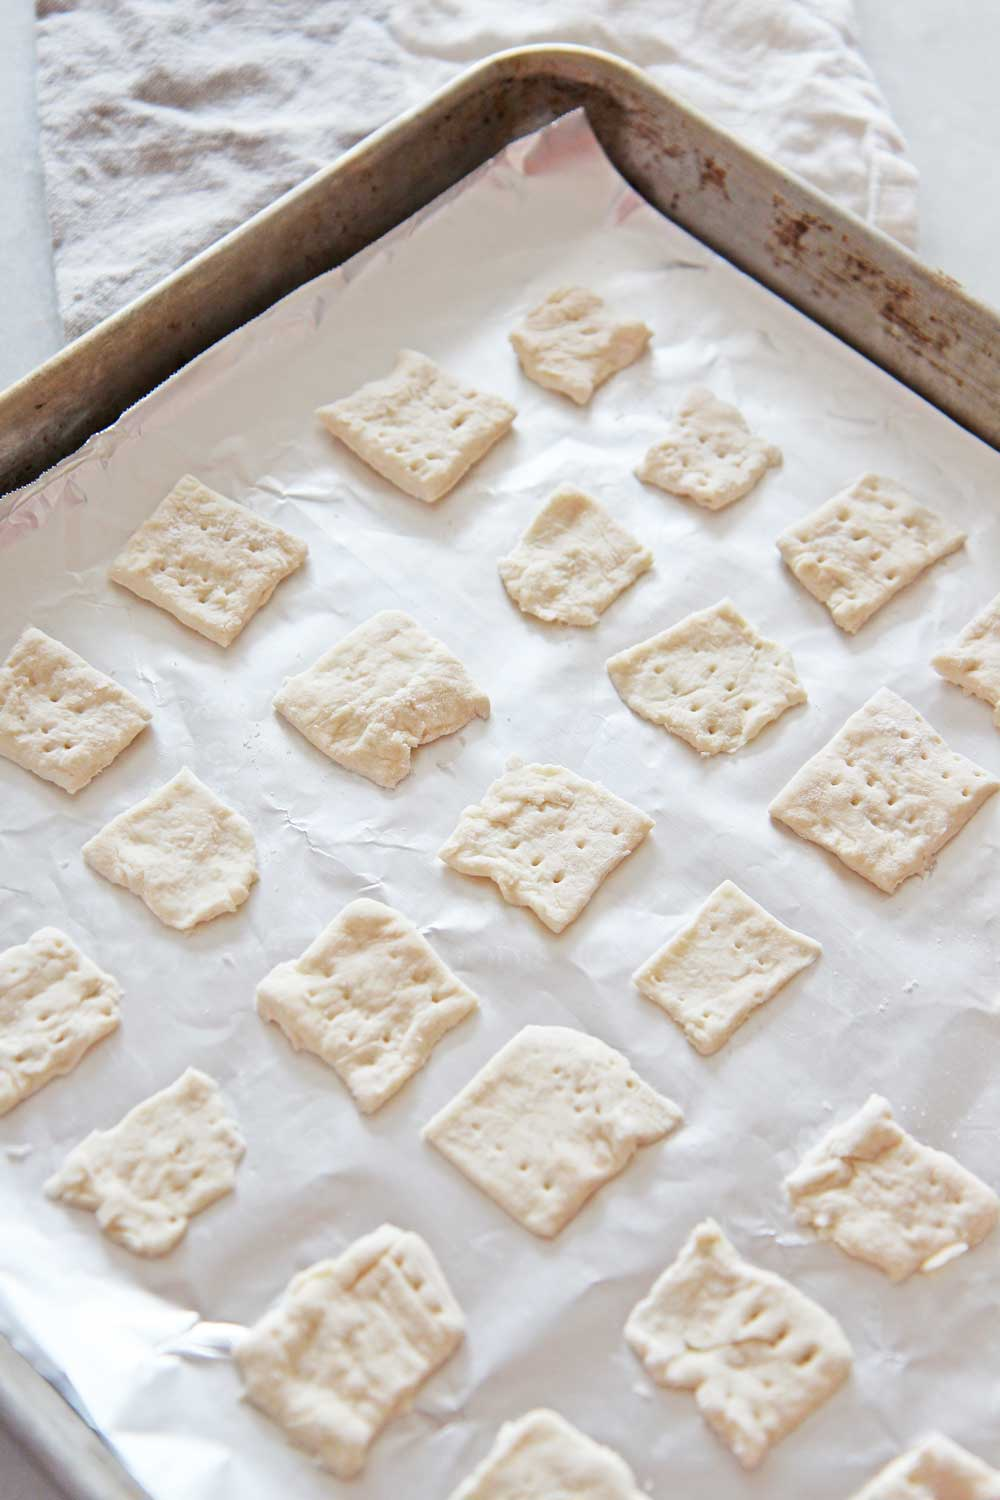 How To Make 11 Ingredient Homemade Crackers